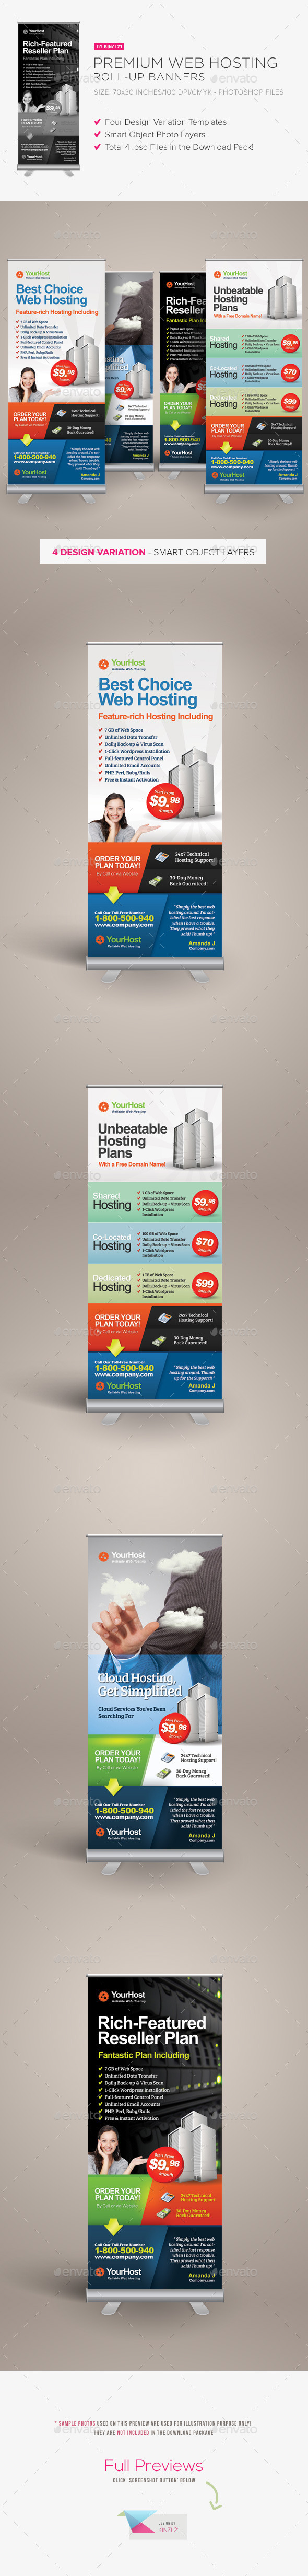 Premium Web Hosting Roll-up Banners - Signage Print Templates